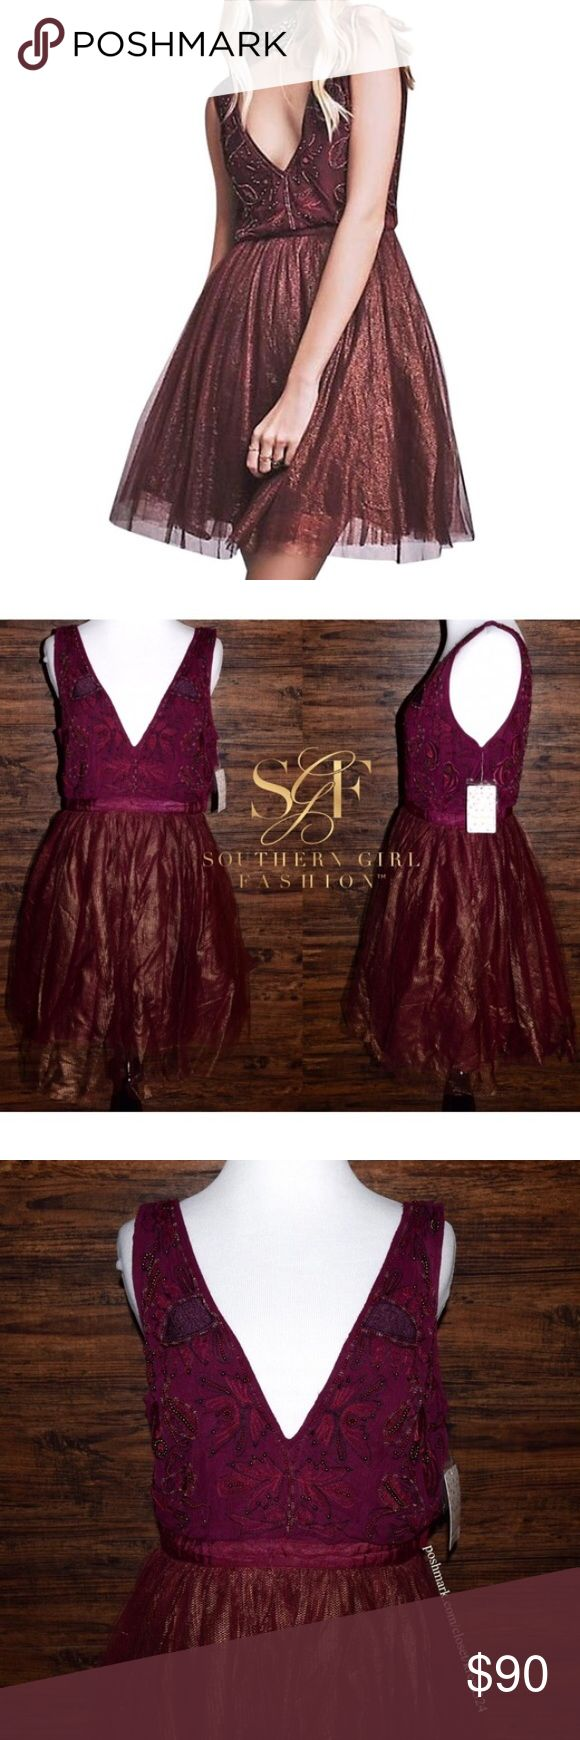 Free People mini dress patterned bohemian classic Beautiful metallic party dress featuring an effortless silhouette with intentional uneven embroidered beading at bodice.       Hidden side zip closure, fit and flare style skirt, fully lined, NYE, Christmas, Holiday Festive!! Free People Dresses